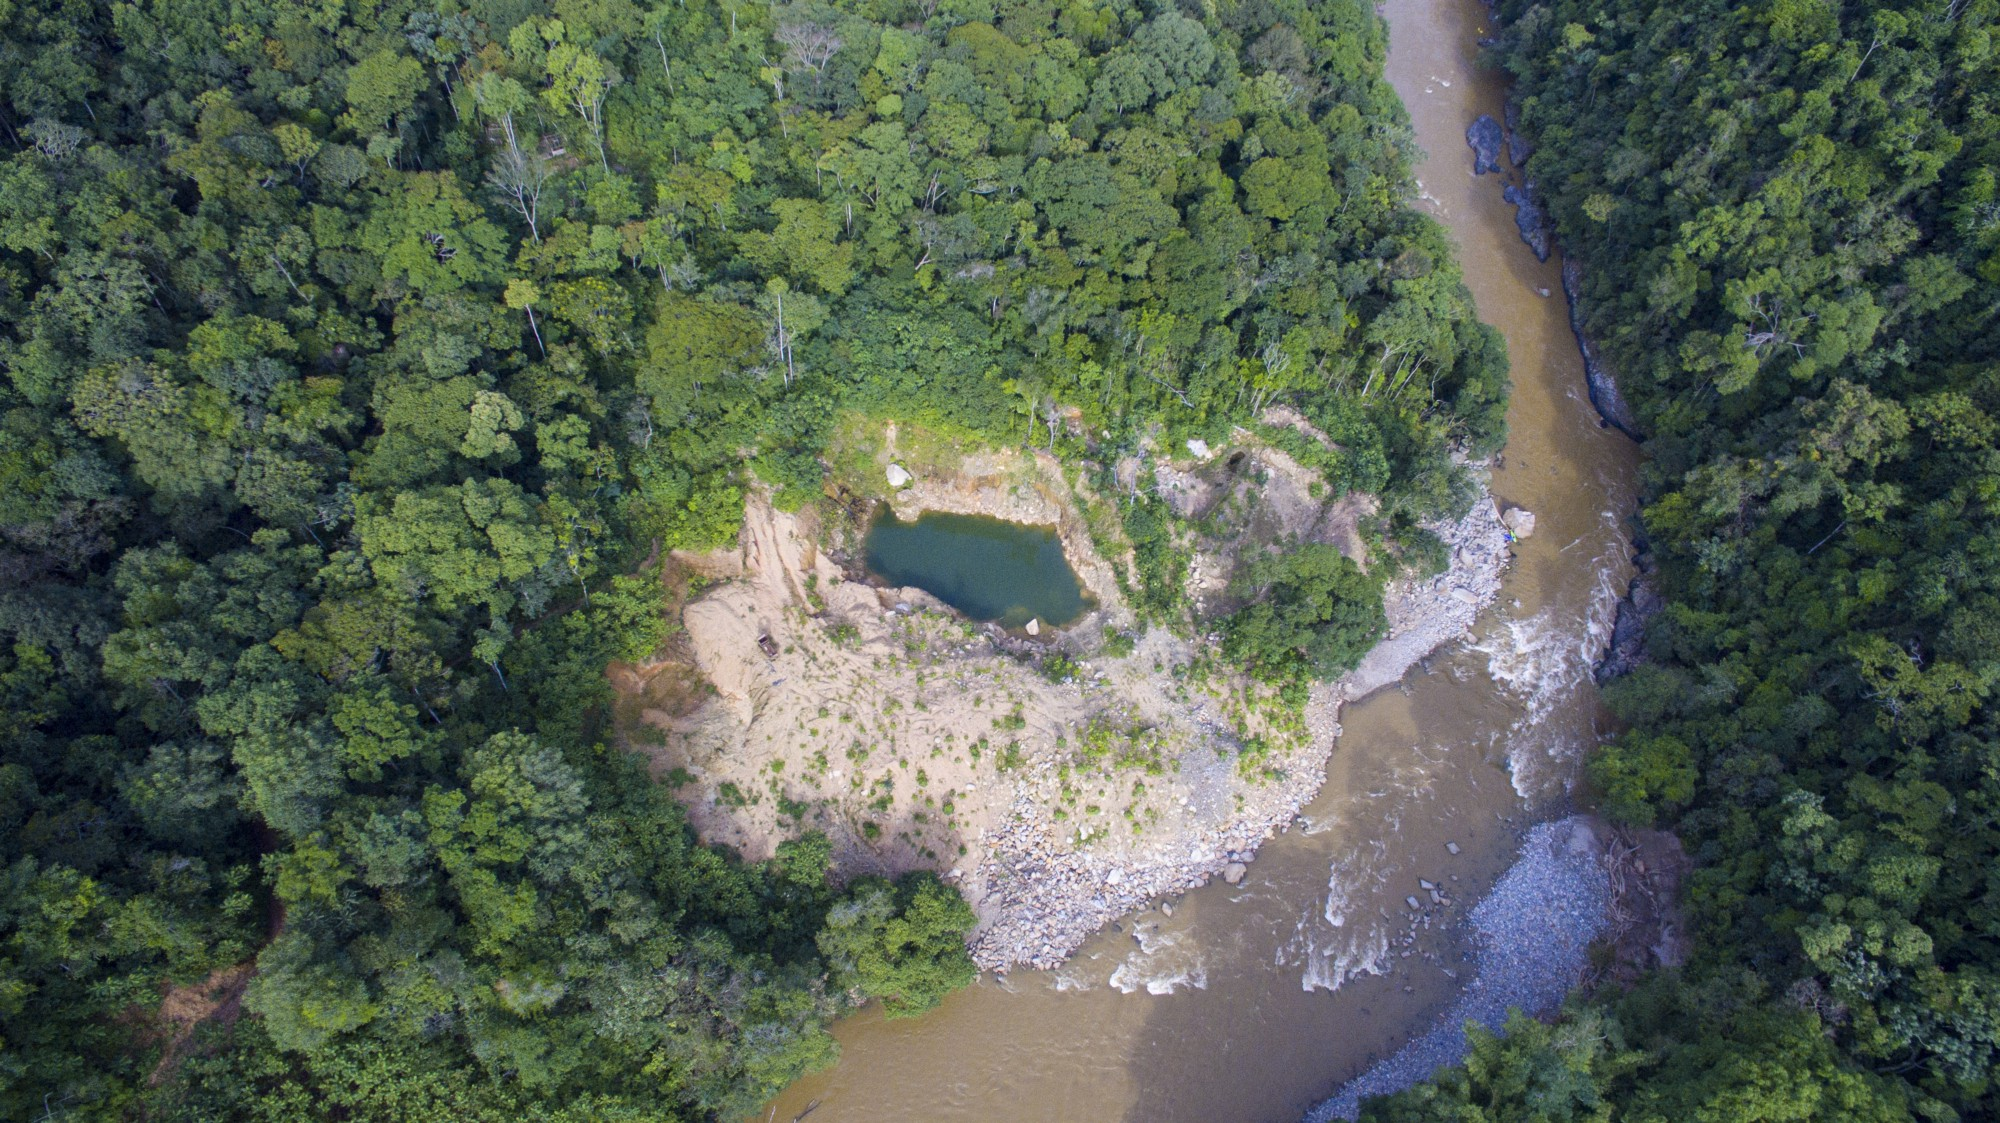 Illegal gold mine on the banks of the Rio Samana